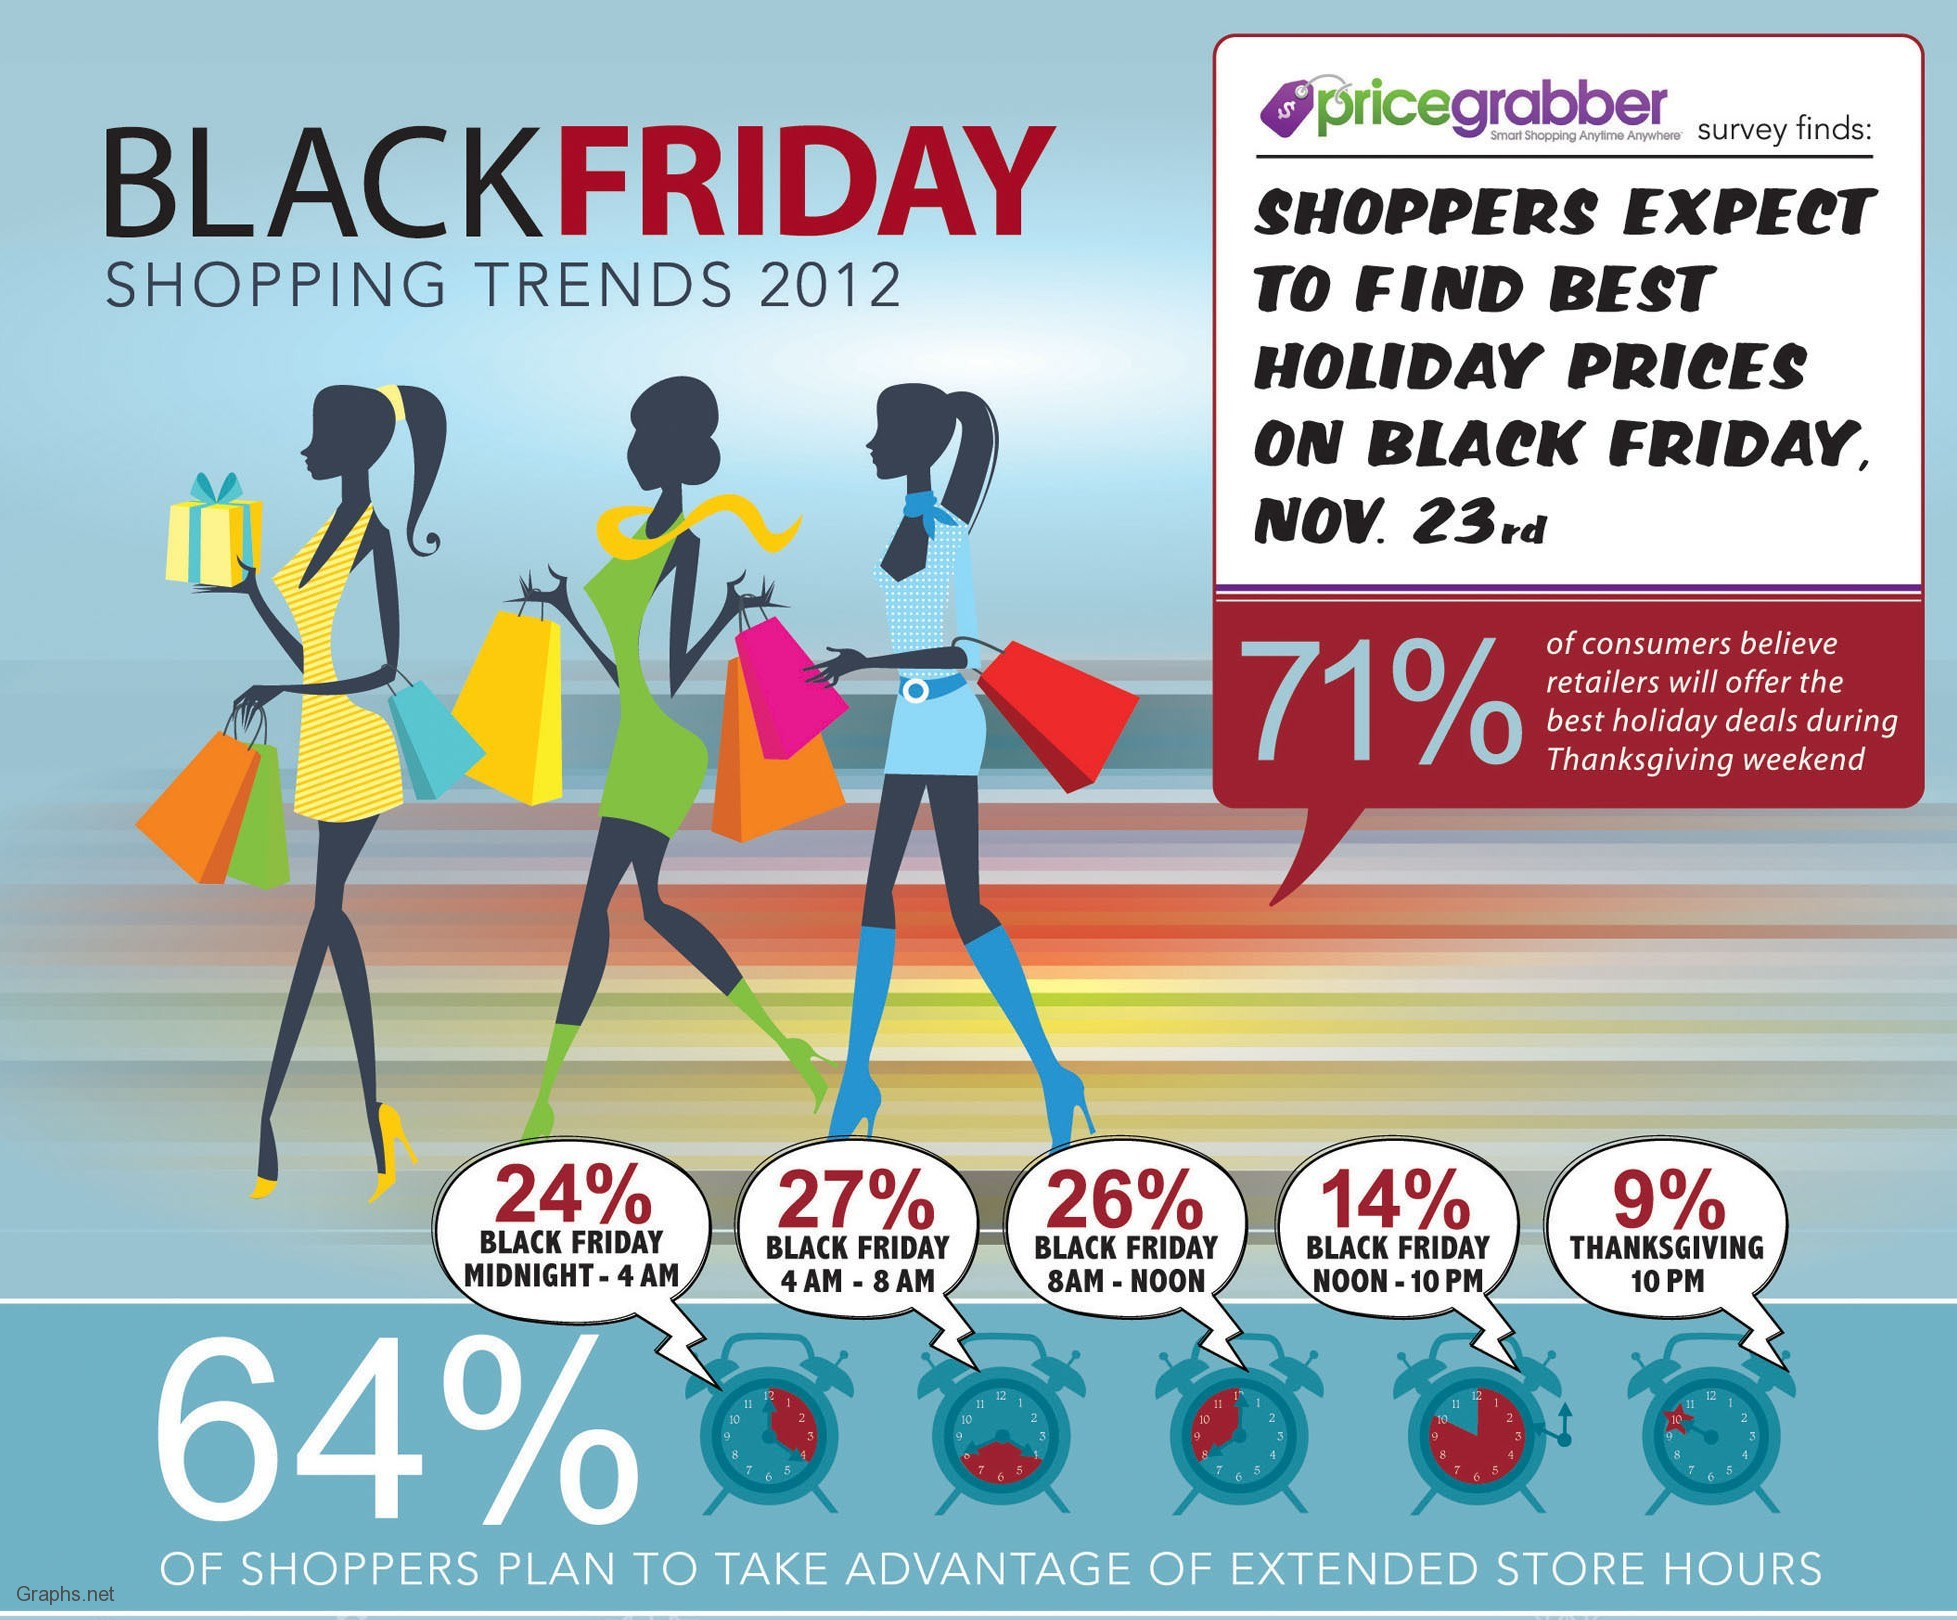 Black Friday 2012 Shopping Trends